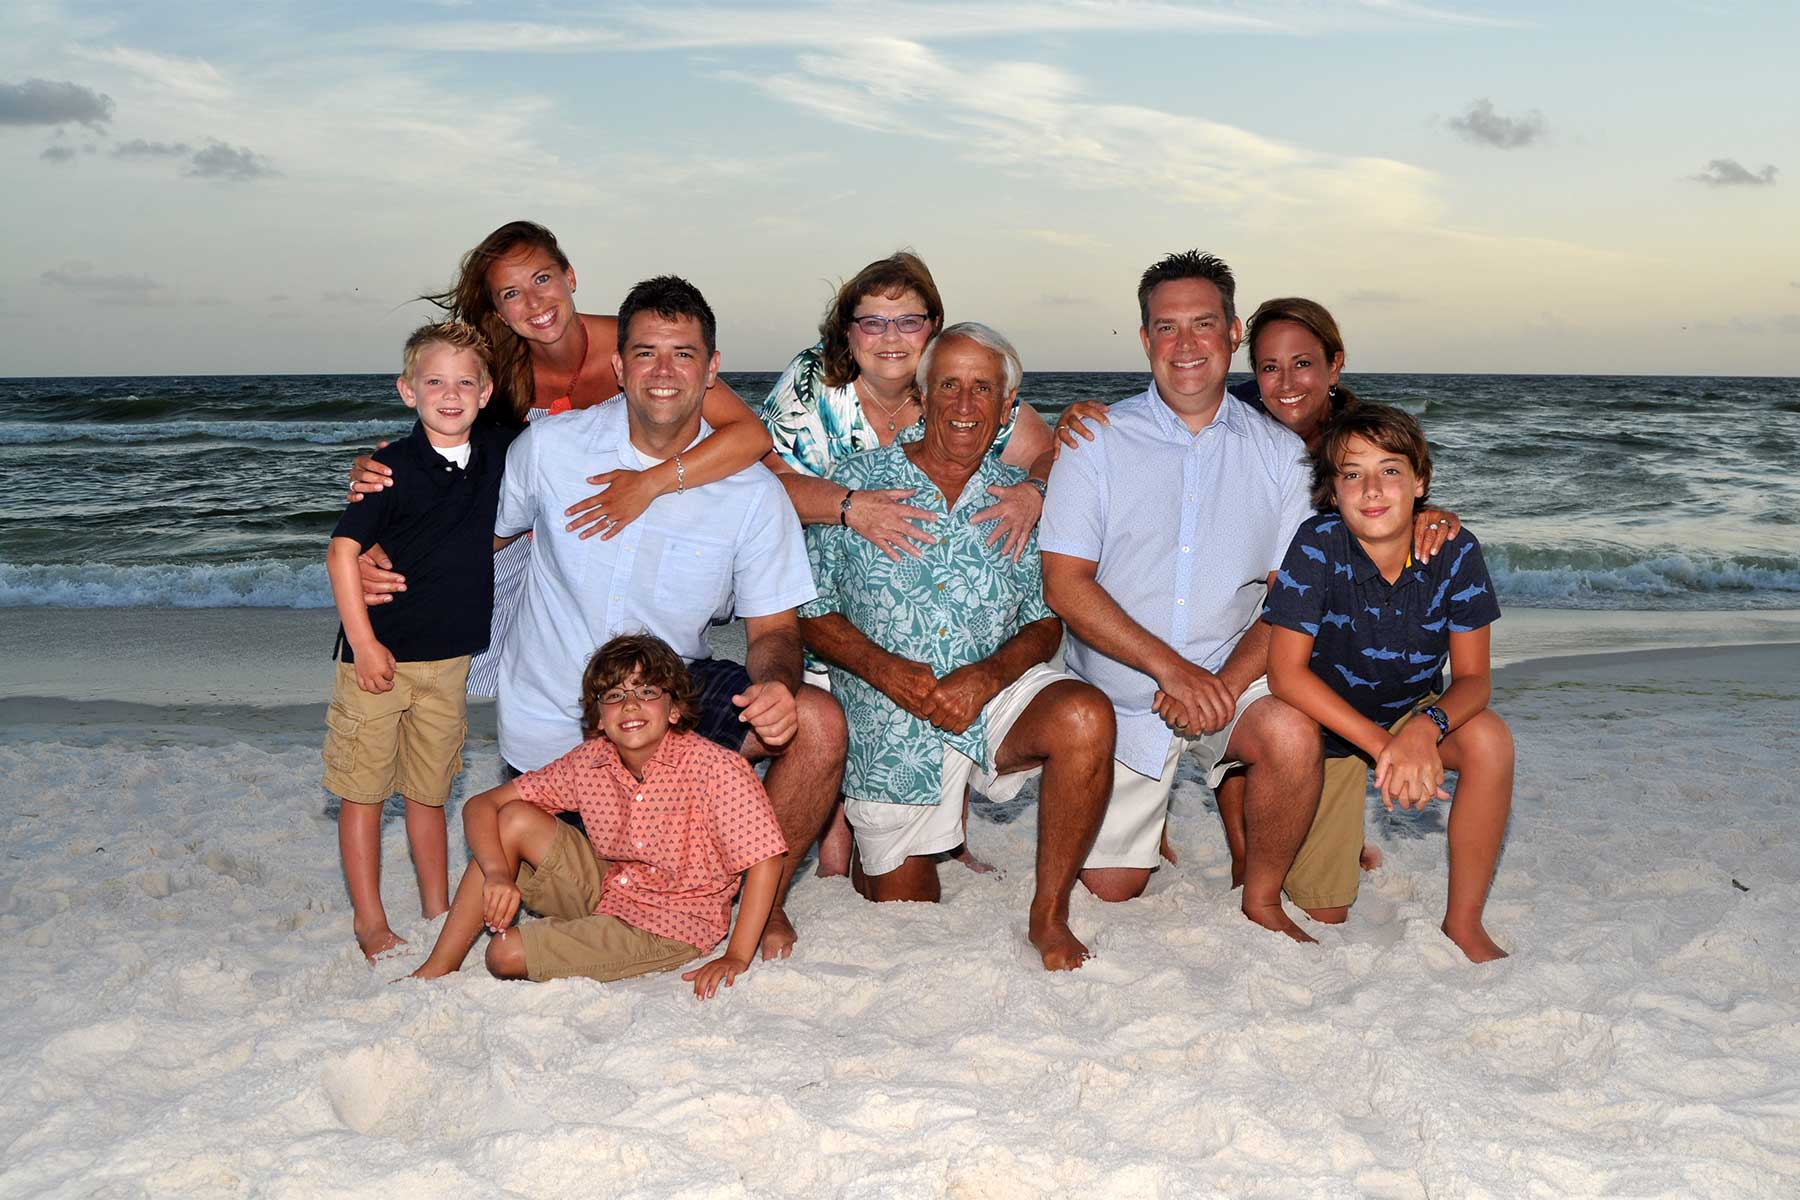 Large family beach photo